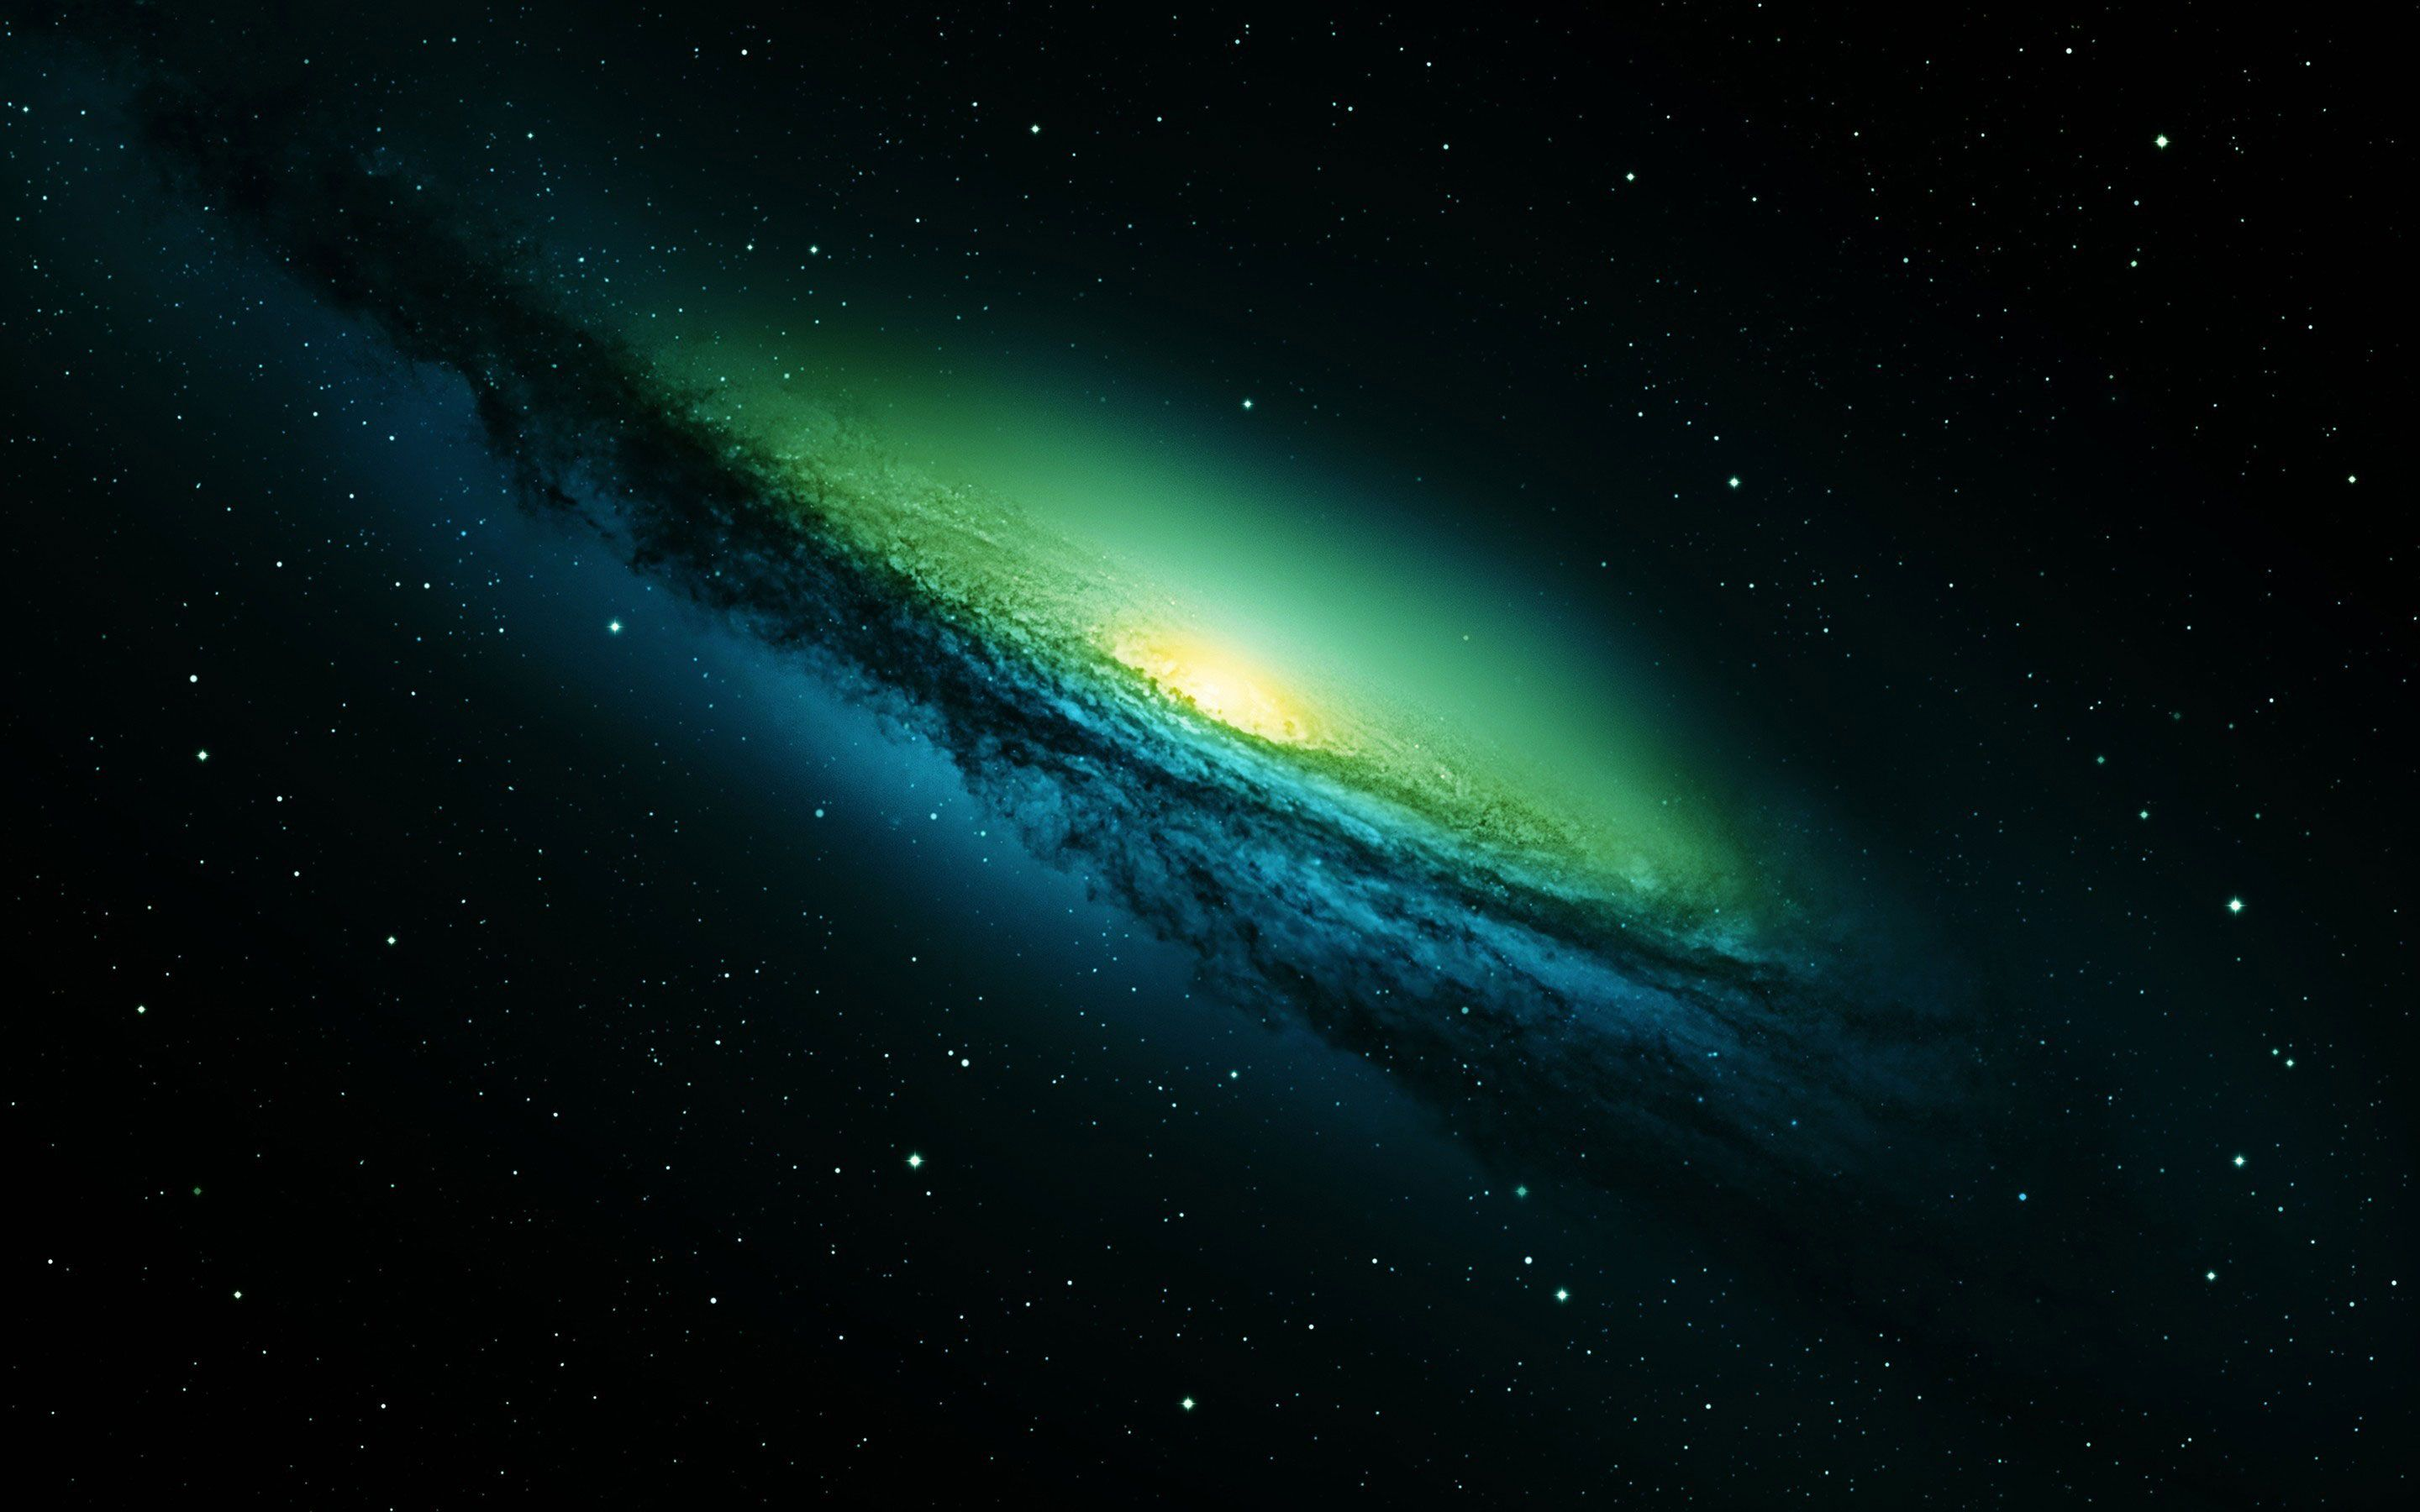 Hd Galaxy Wallpapers Top Free Hd Galaxy Backgrounds